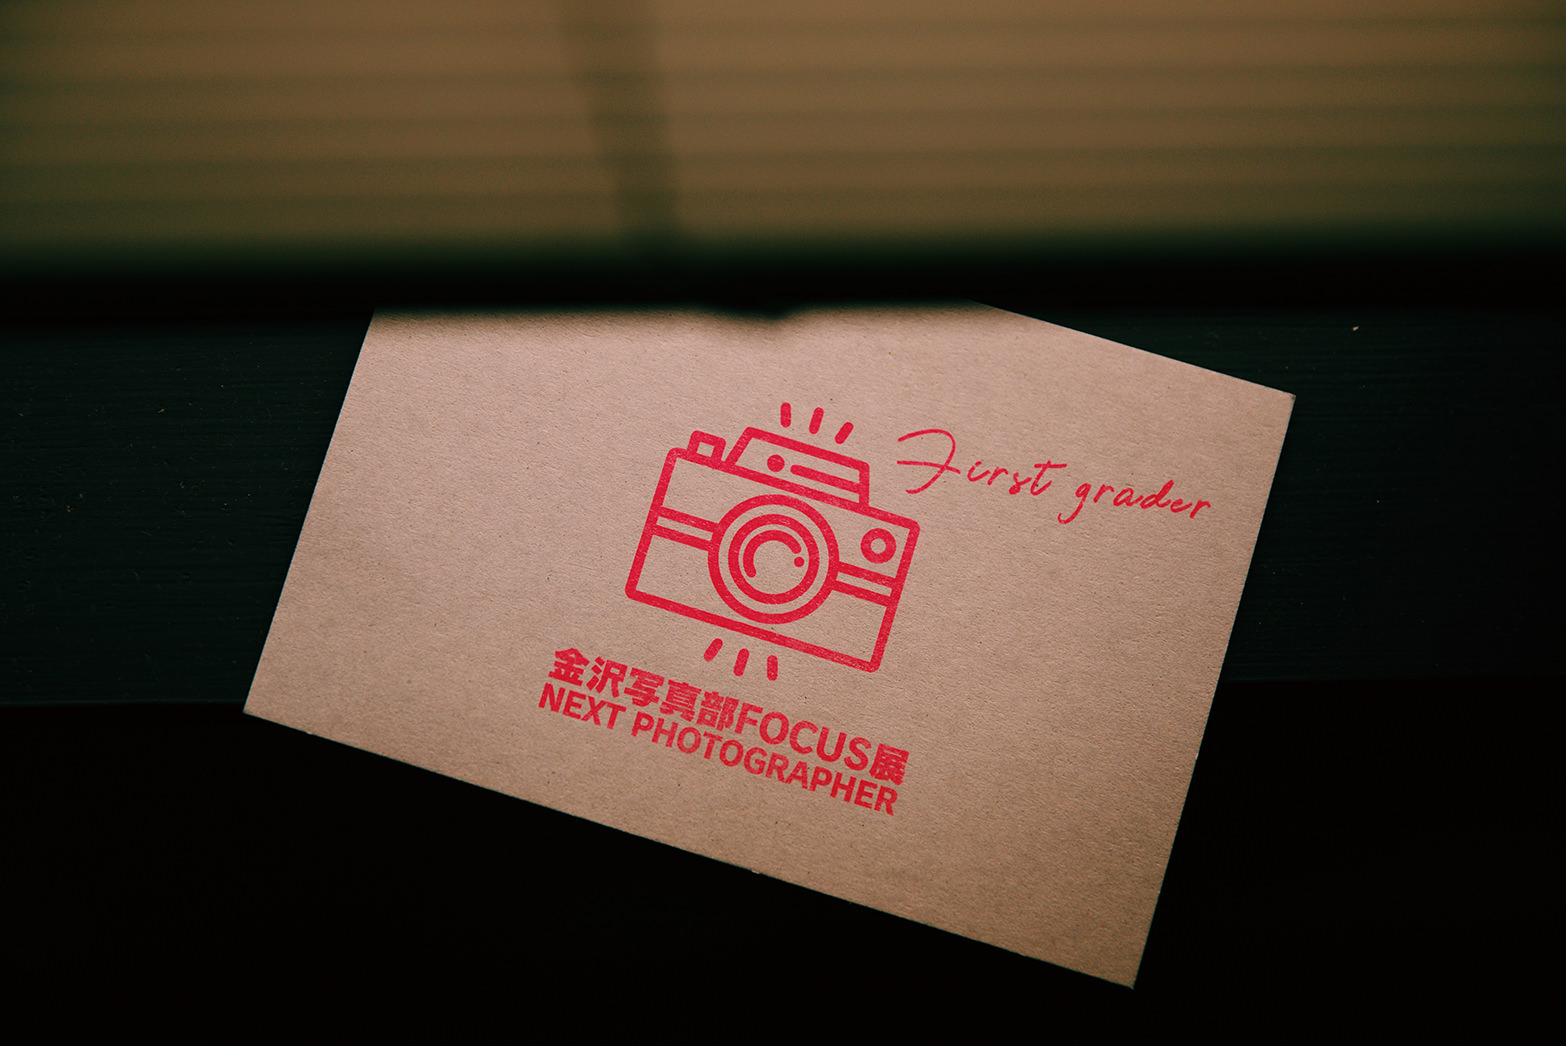 金沢写真部FOCUS展 NEXT PHOTOGRAPHER